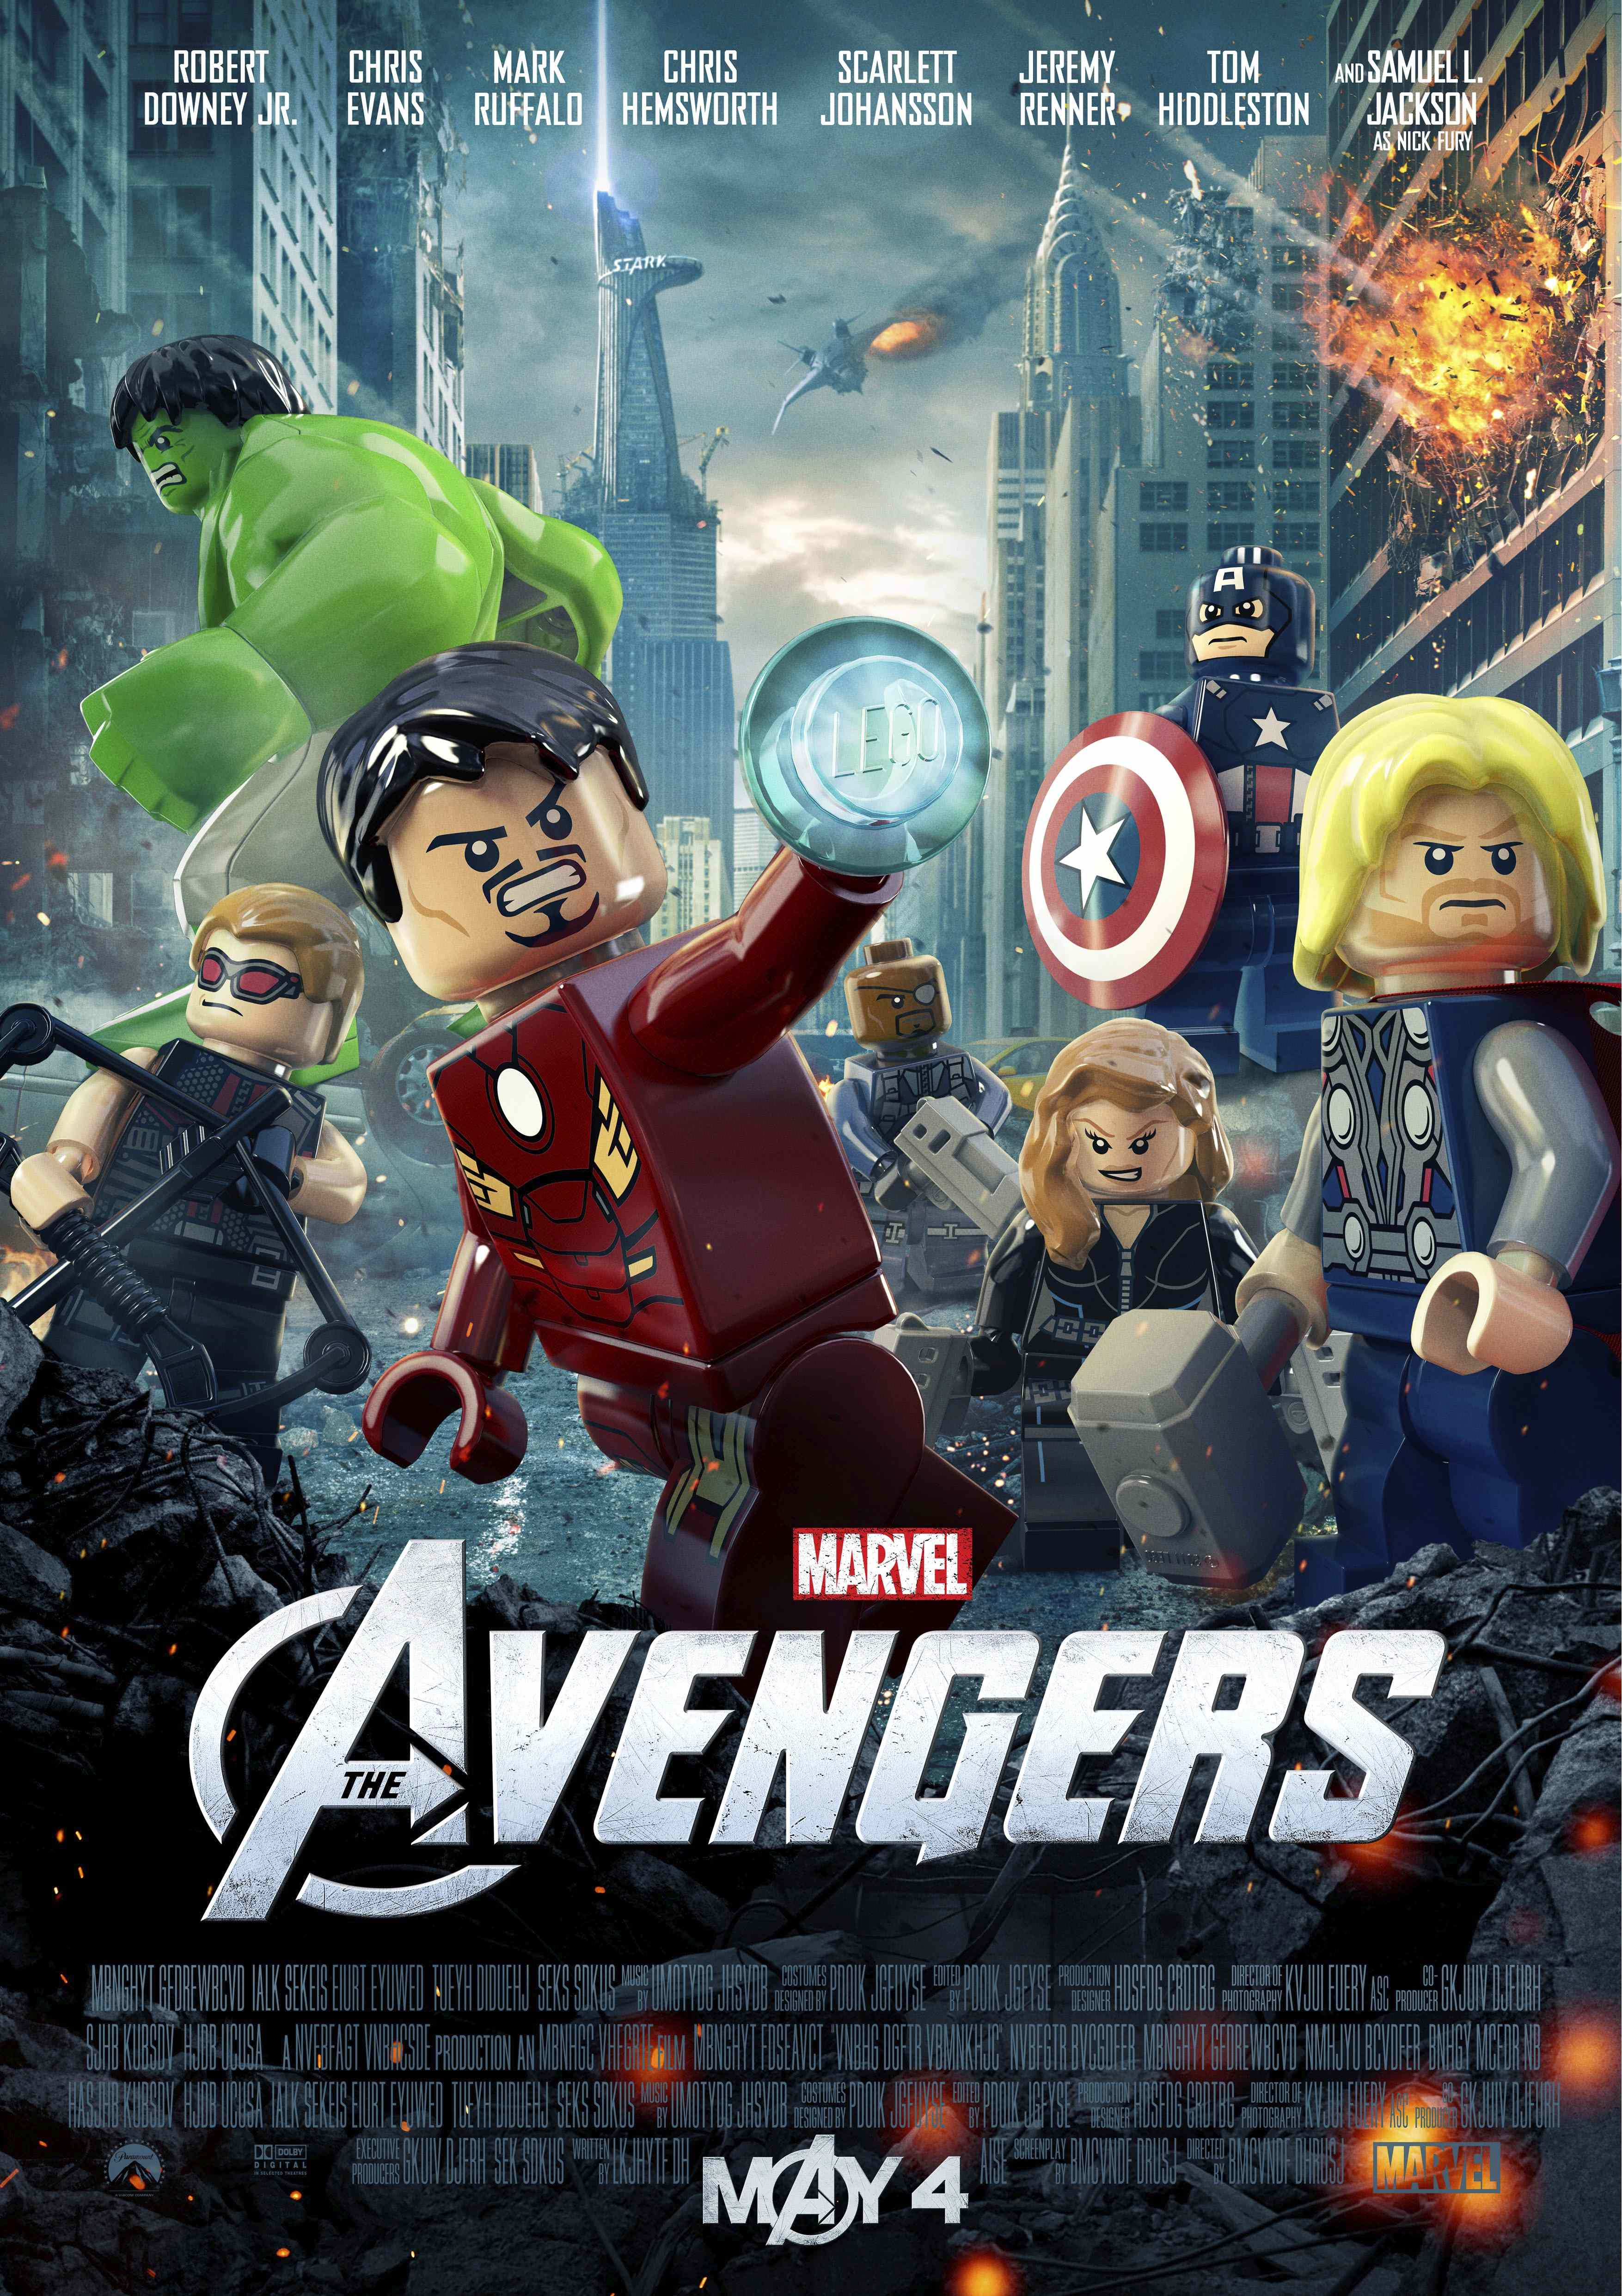 Avengers LEGO Movie Poster Previews LEGO figures